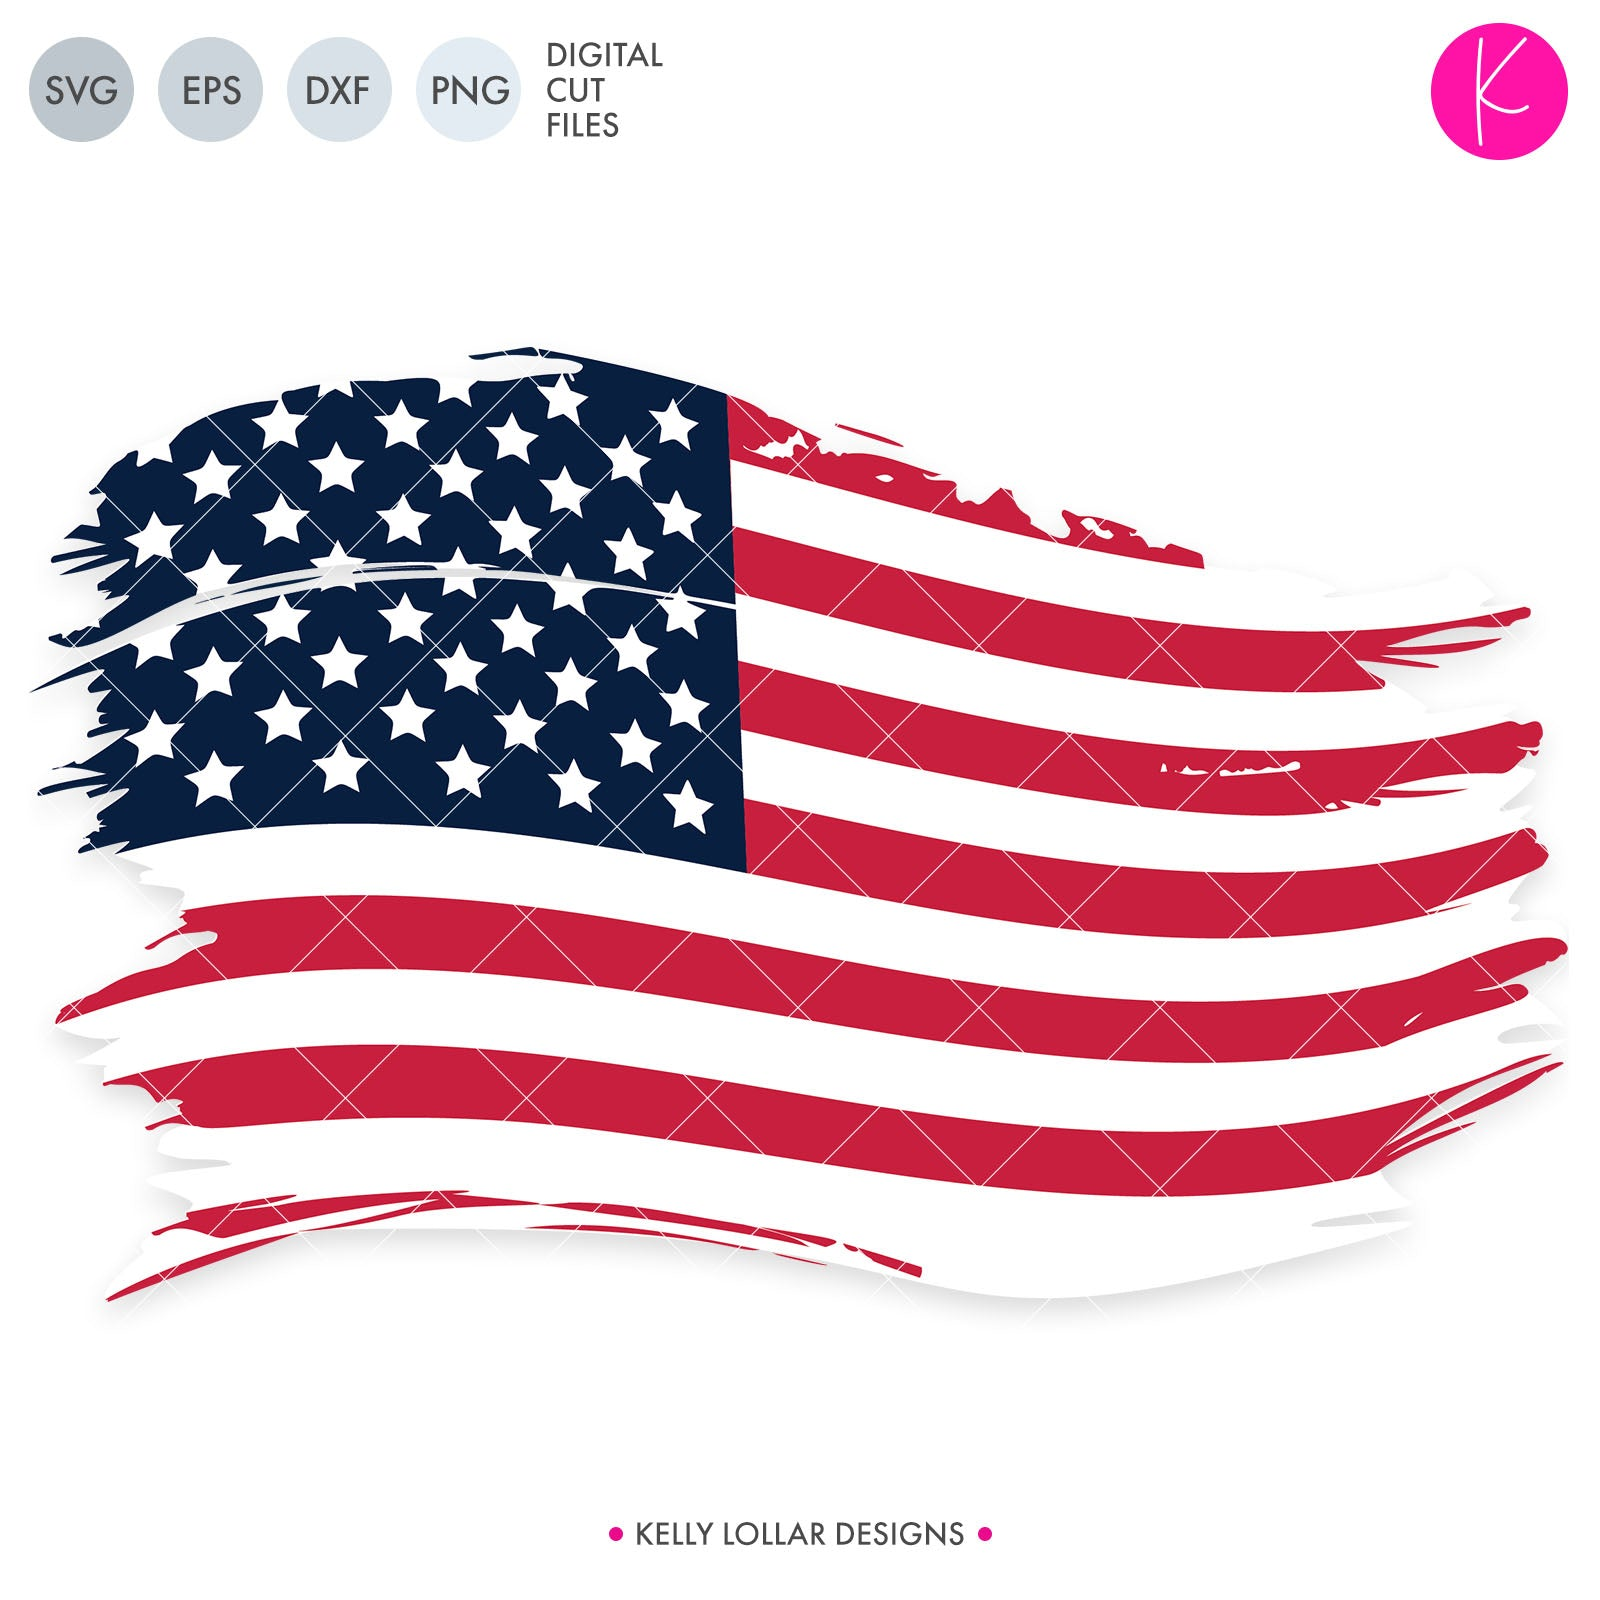 Distressed American Flag svg - Grunge American Flag with Solid Base for Patriotic Designs | SVG DXF PNG Cut Files